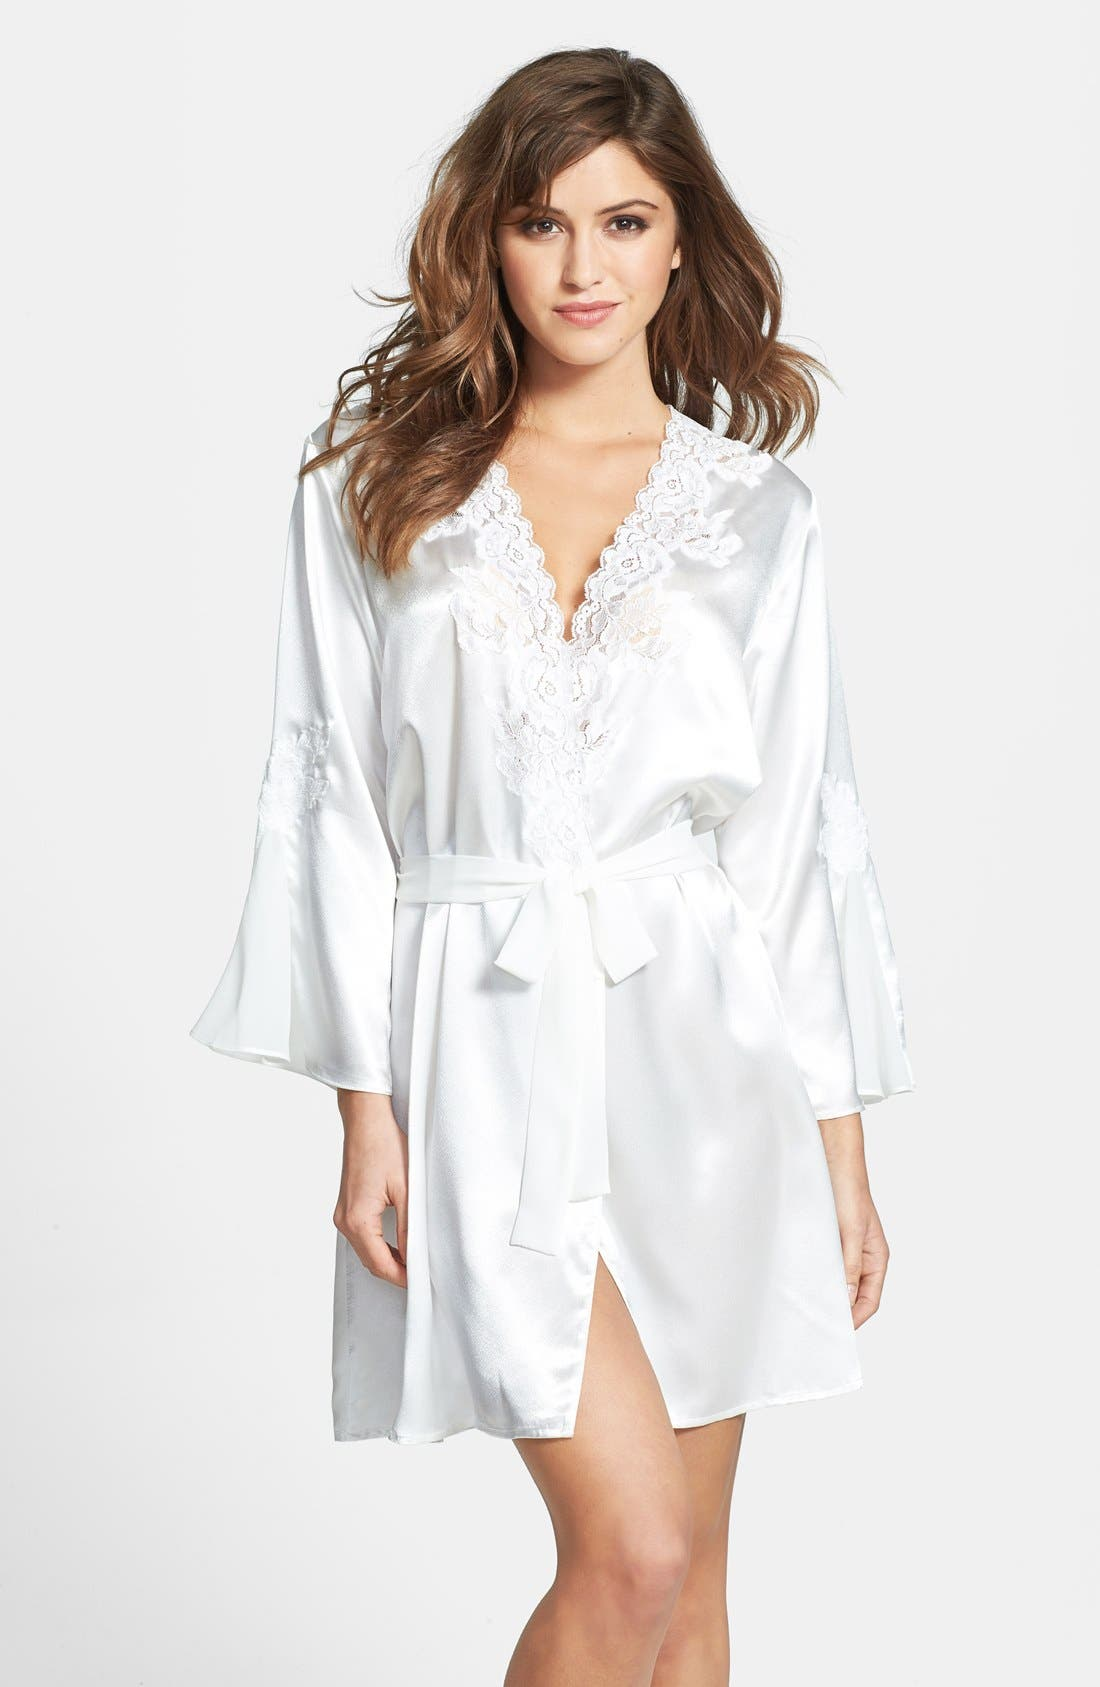 Main Image - Oscar de la Renta Sleepwear 'Evening Bliss' Satin Charmeuse Wrap Robe